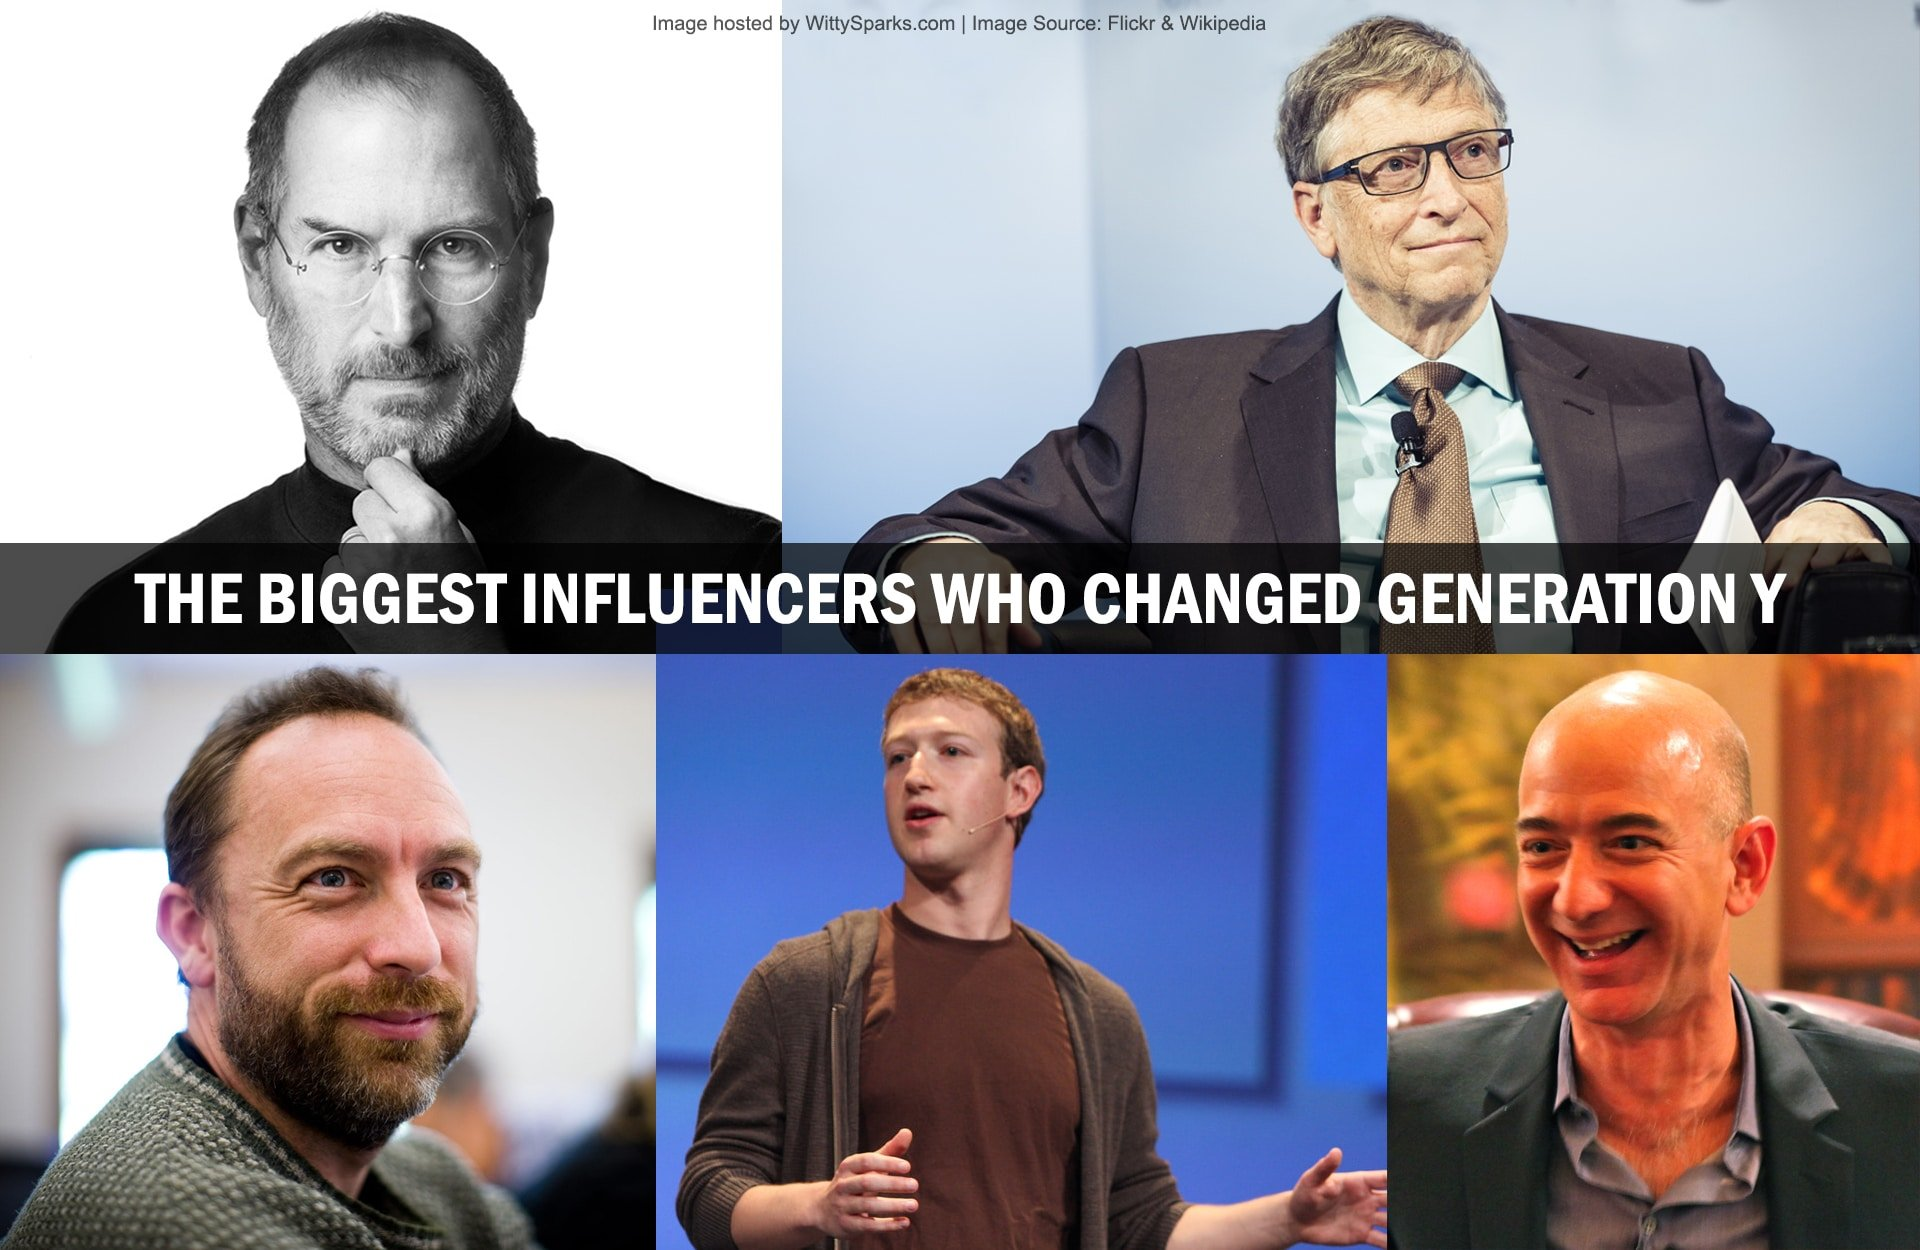 Biggest influencers that molded Generation Y.